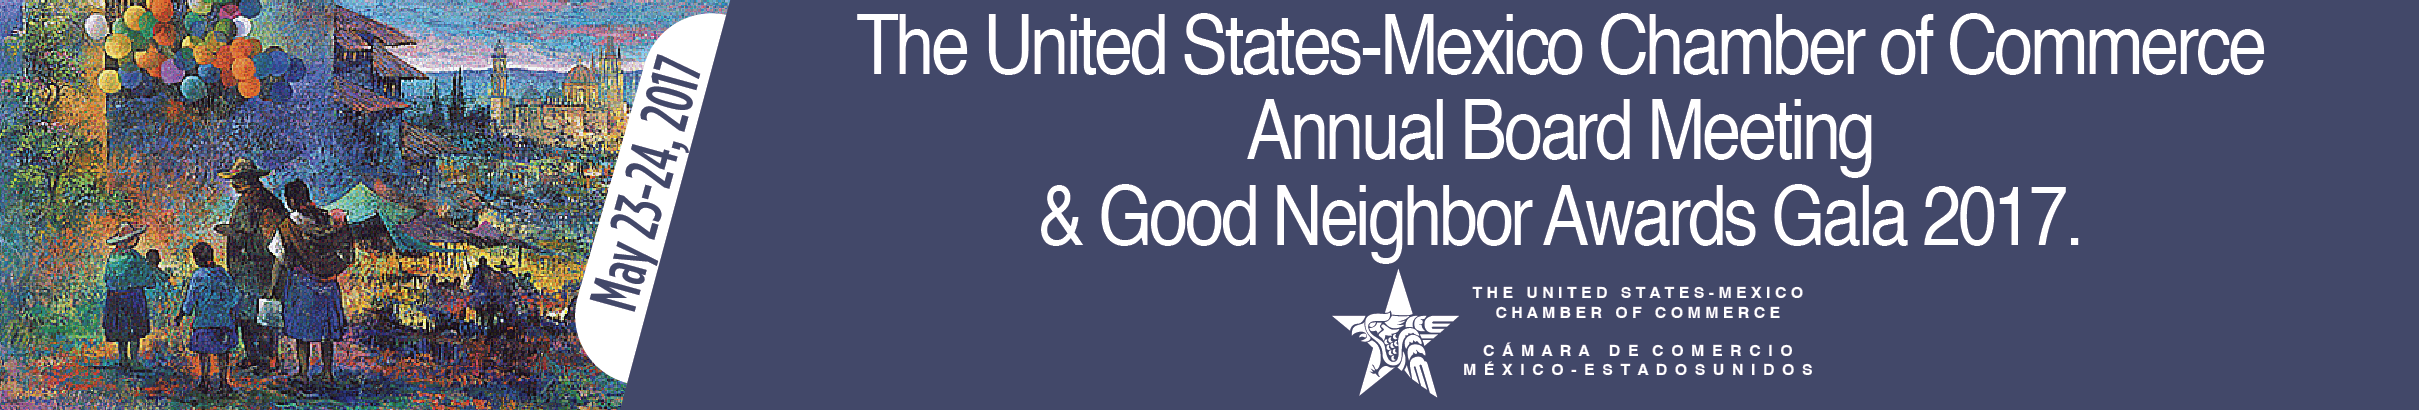 Binational Board of Directors Meeting & Good Neighbor Awards Gala 2017